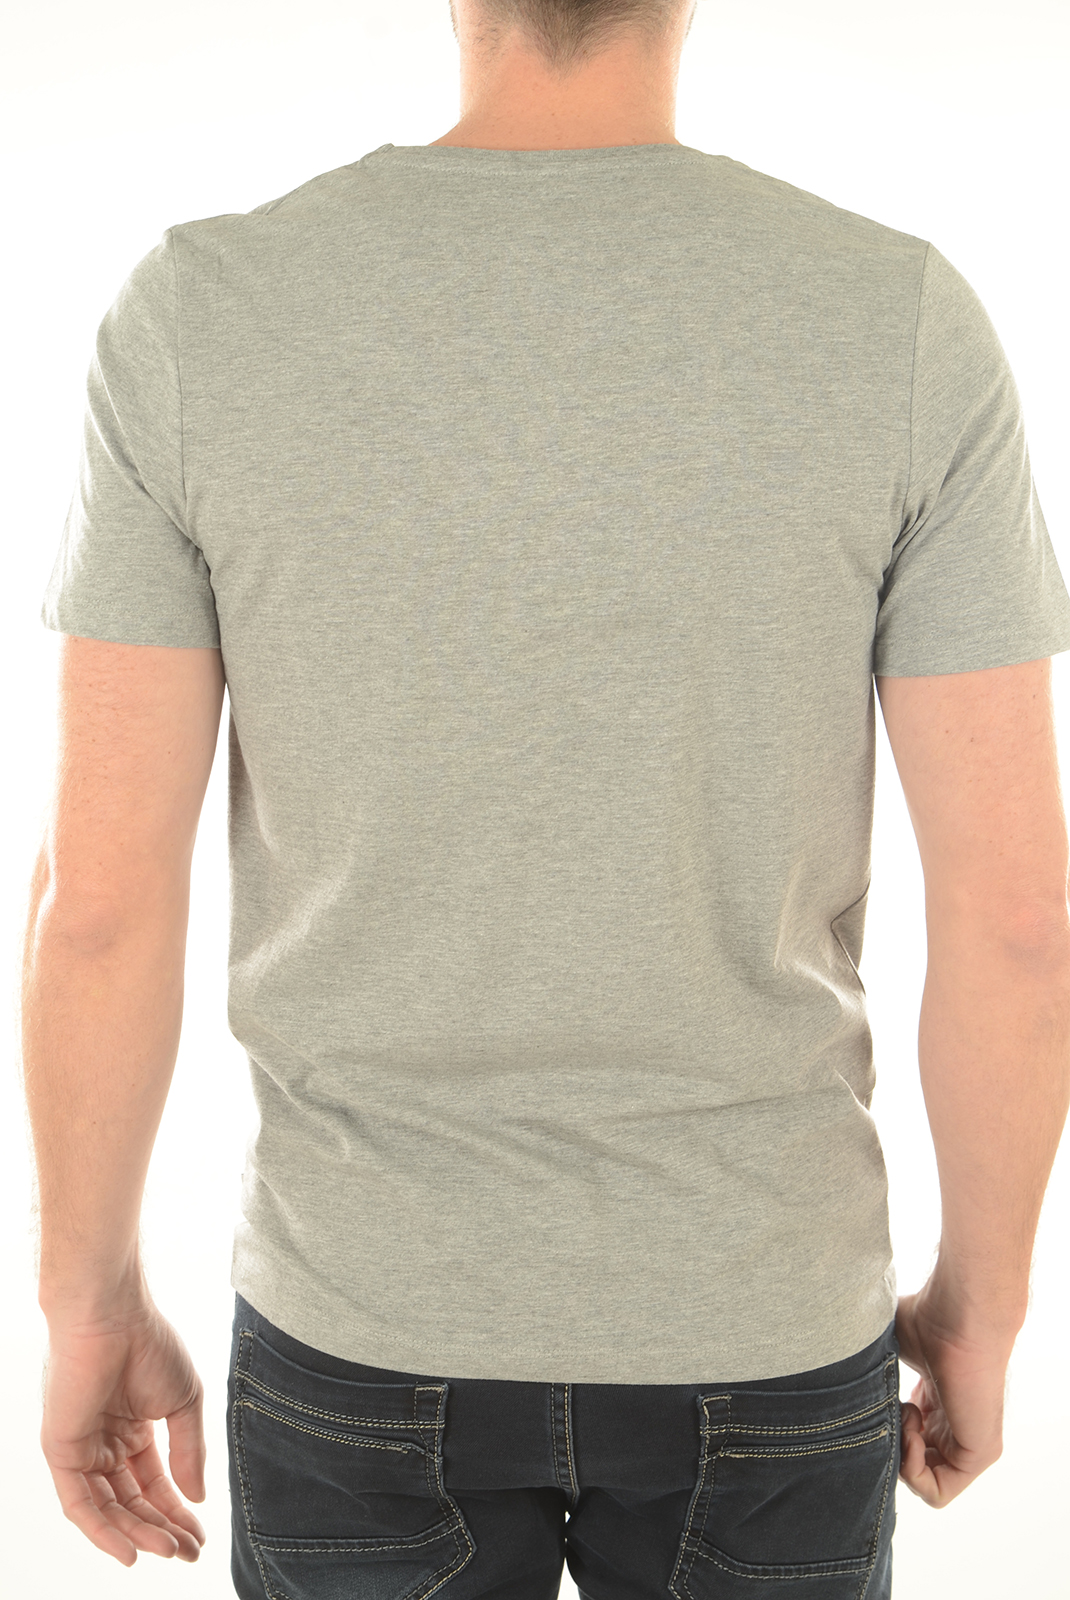 Tee-shirts  Jack & Jones VEE NECK BASIC LIGHT GREY